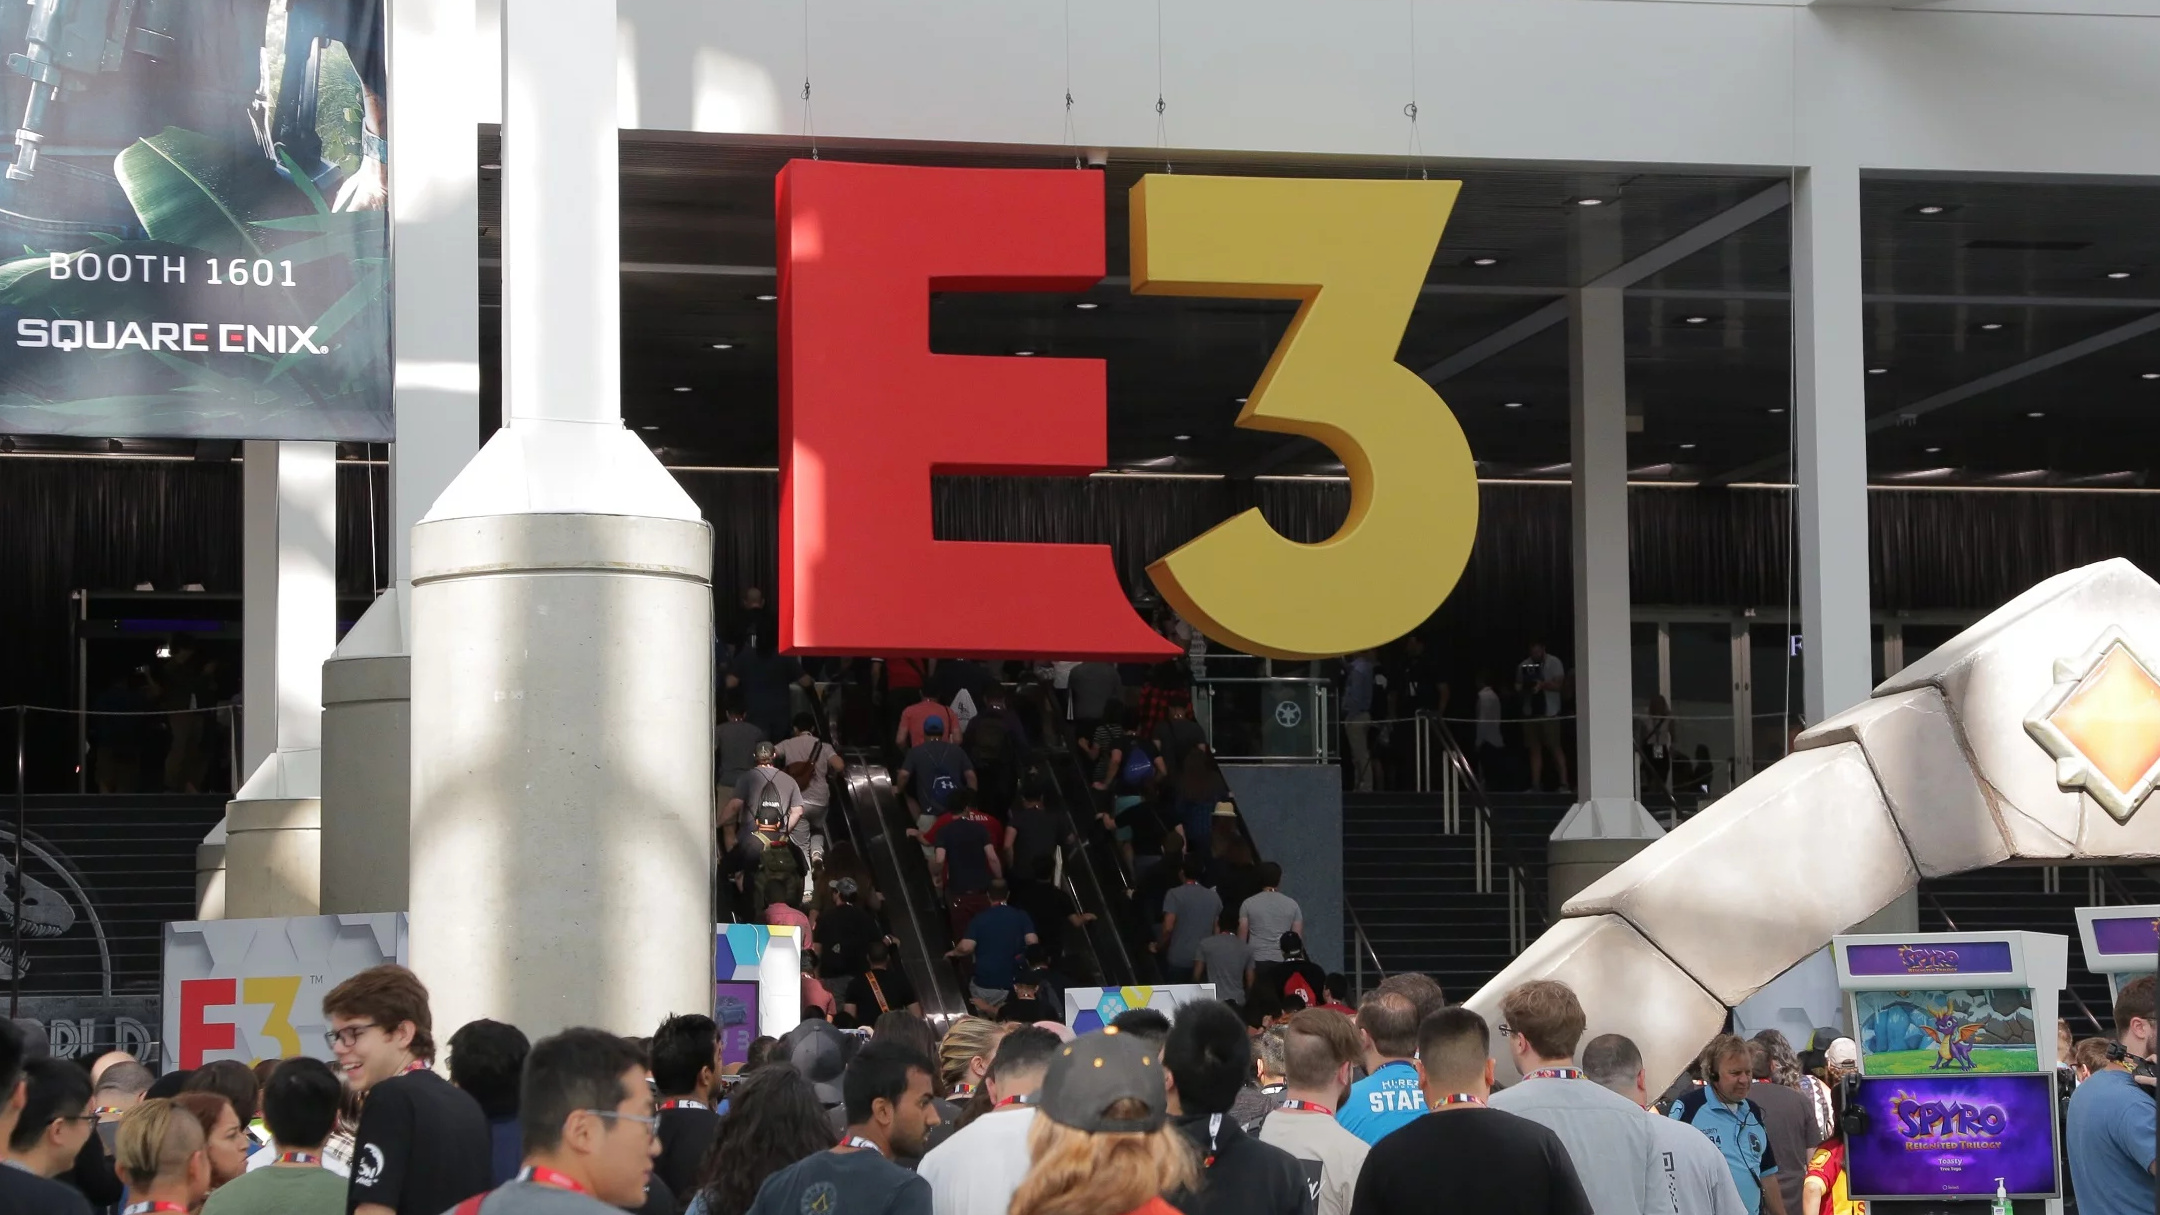 Even Geoff Keighley is skipping E3 this year